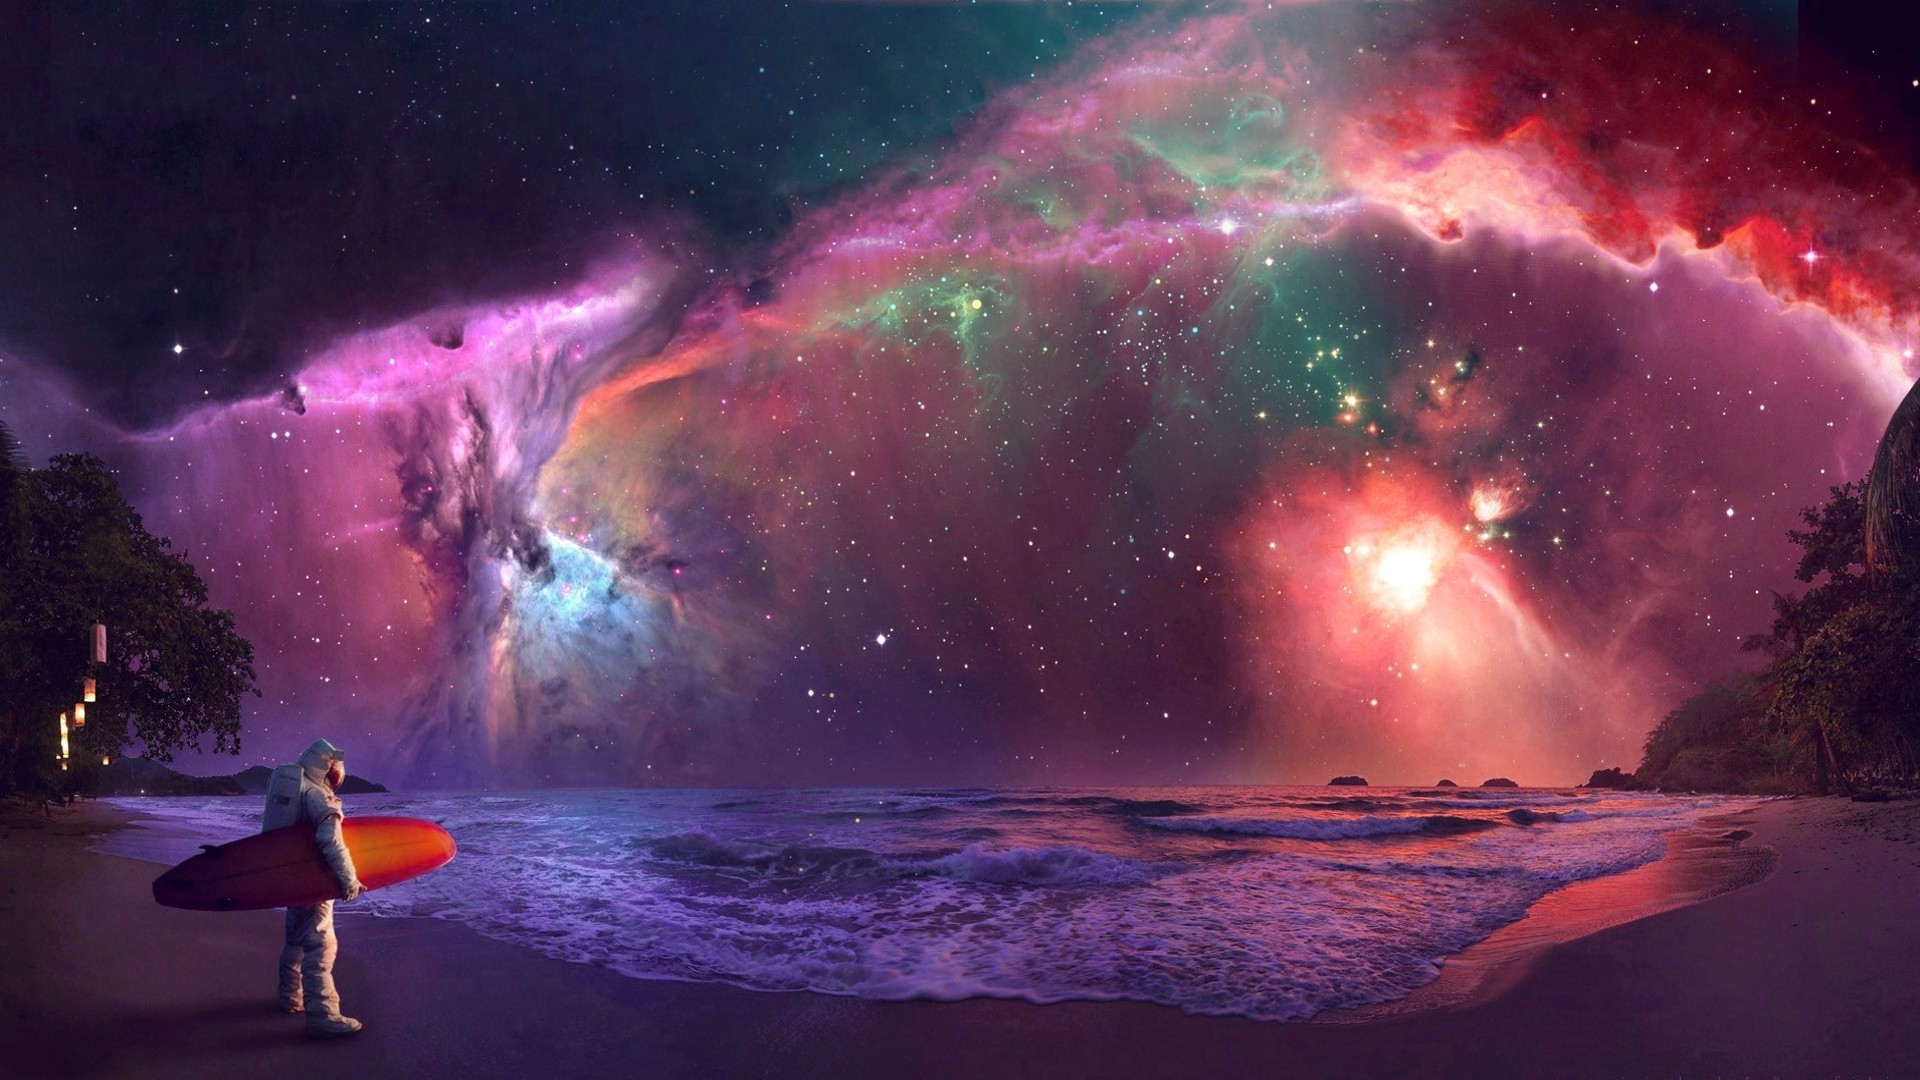 … Super Surfing HD Desktop Wallpaper. 1920×1080. Nebula Tag – Nebula Beach  Space Colorful Surfer Ocean Wonderful Great Waves Beaches Amazing Paradise  …